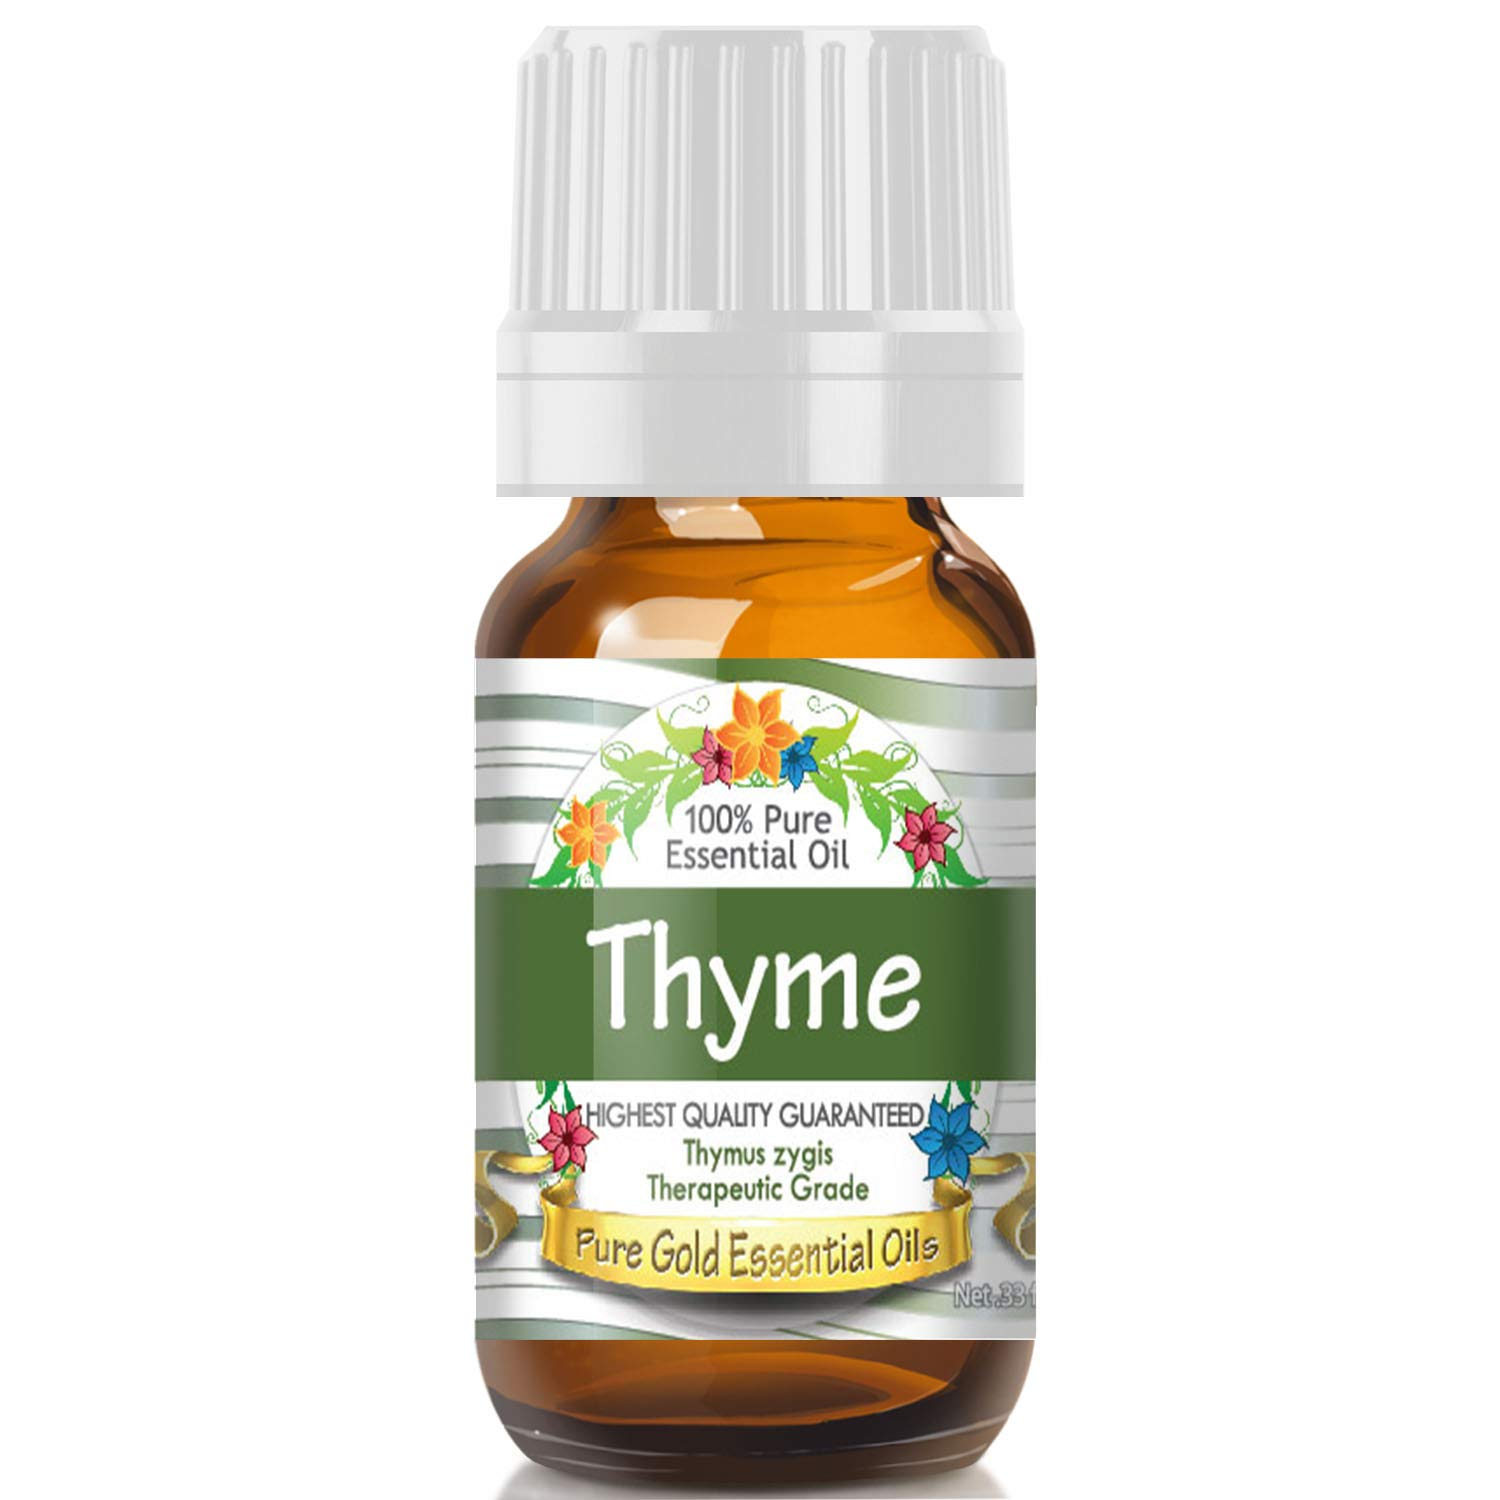 Pure Gold Thyme Essential Oil, 100% Natural & Undiluted, 10ml